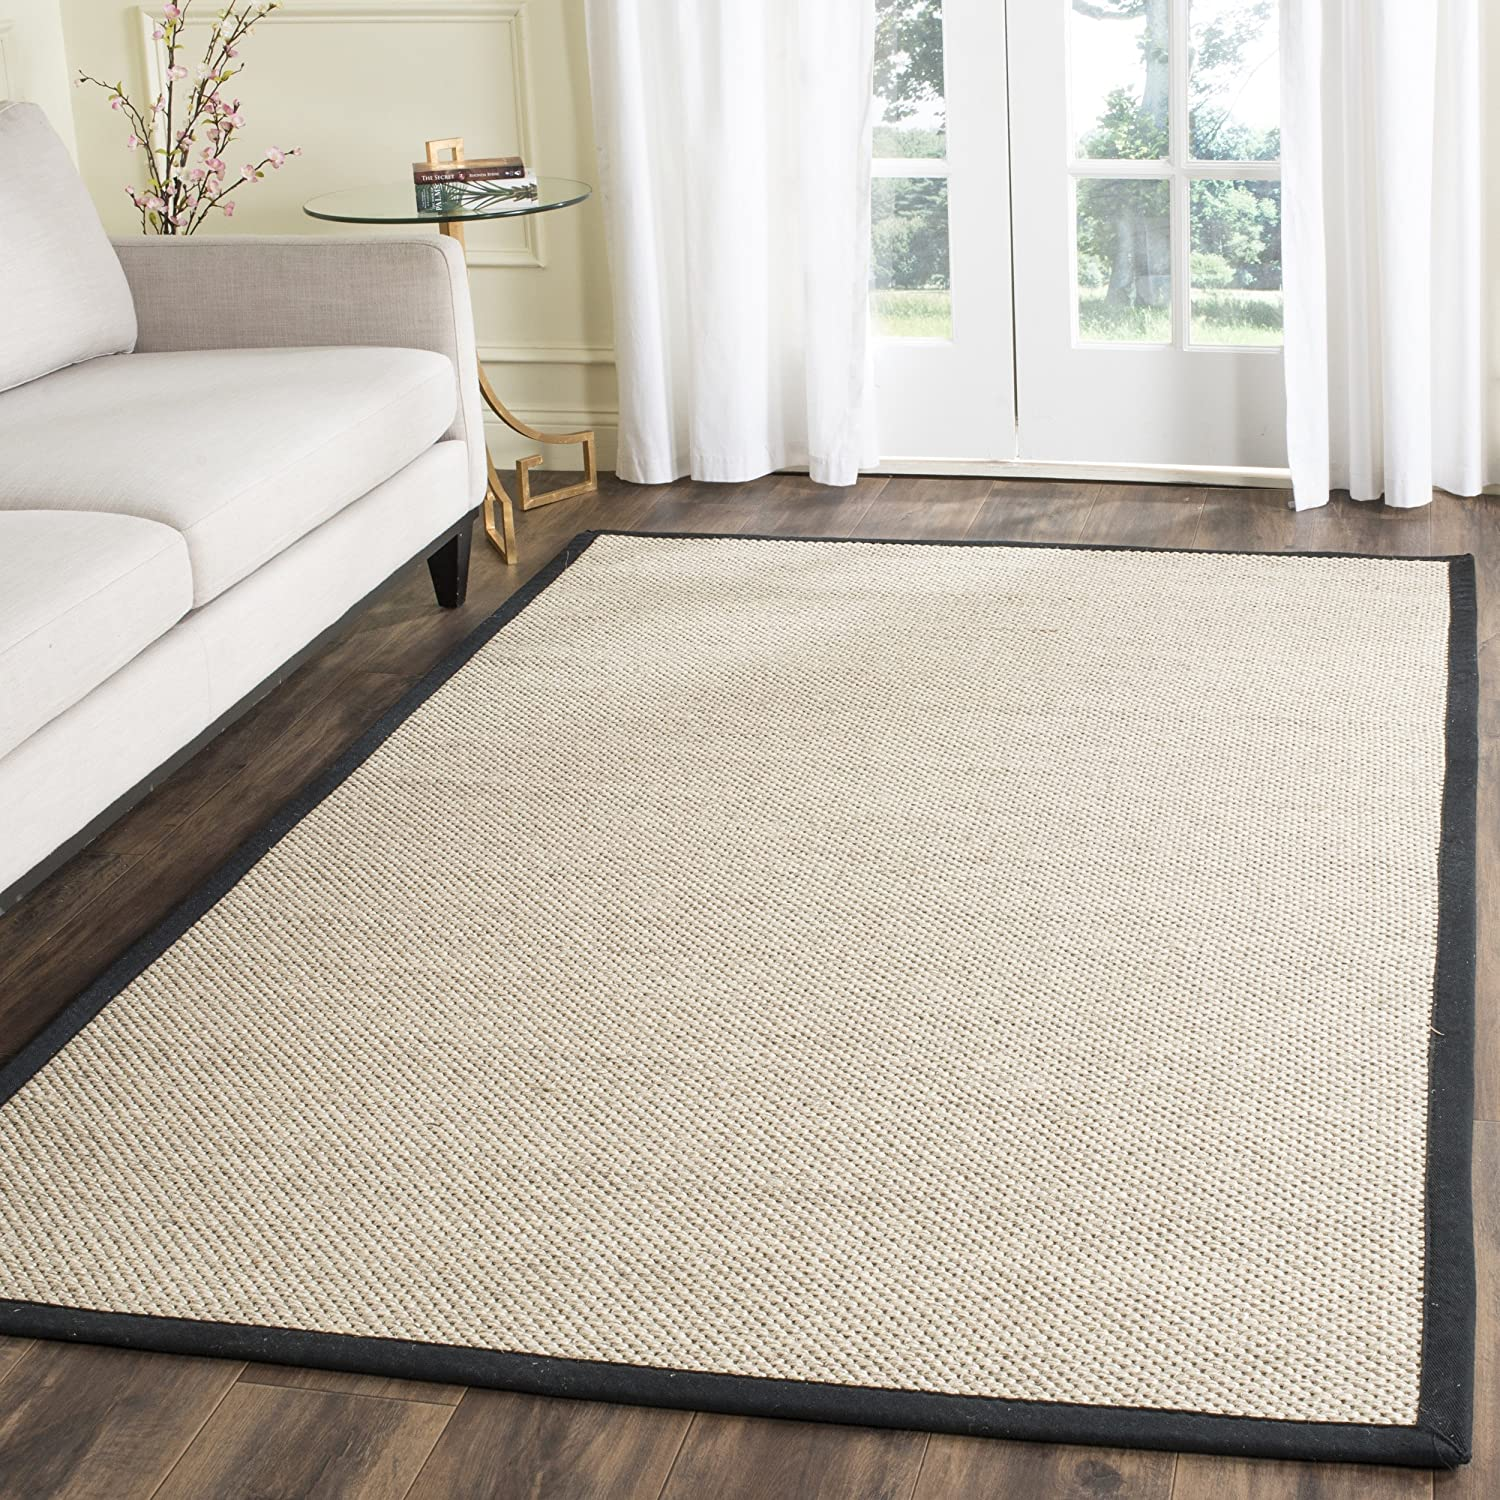 fiber rugs x seagrass natural soft overstock free home product shipping garden today safavieh rug